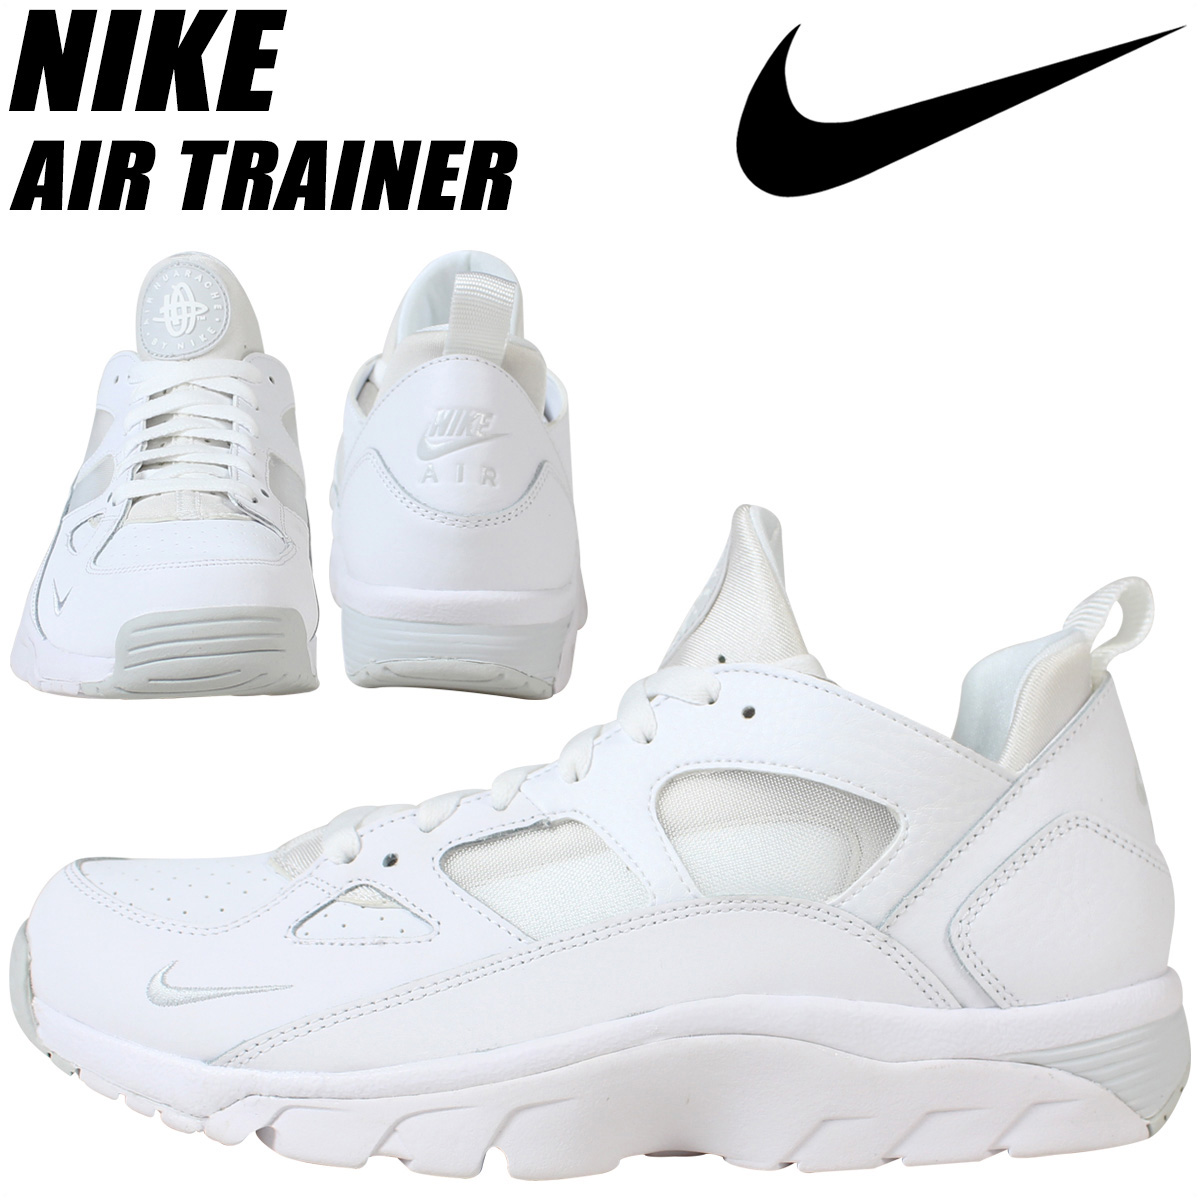 83174a1788387 NIKE Nike Air trainer sneakers AIR TRAINER HUARACHE LOW 749447-110 men s  shoes white